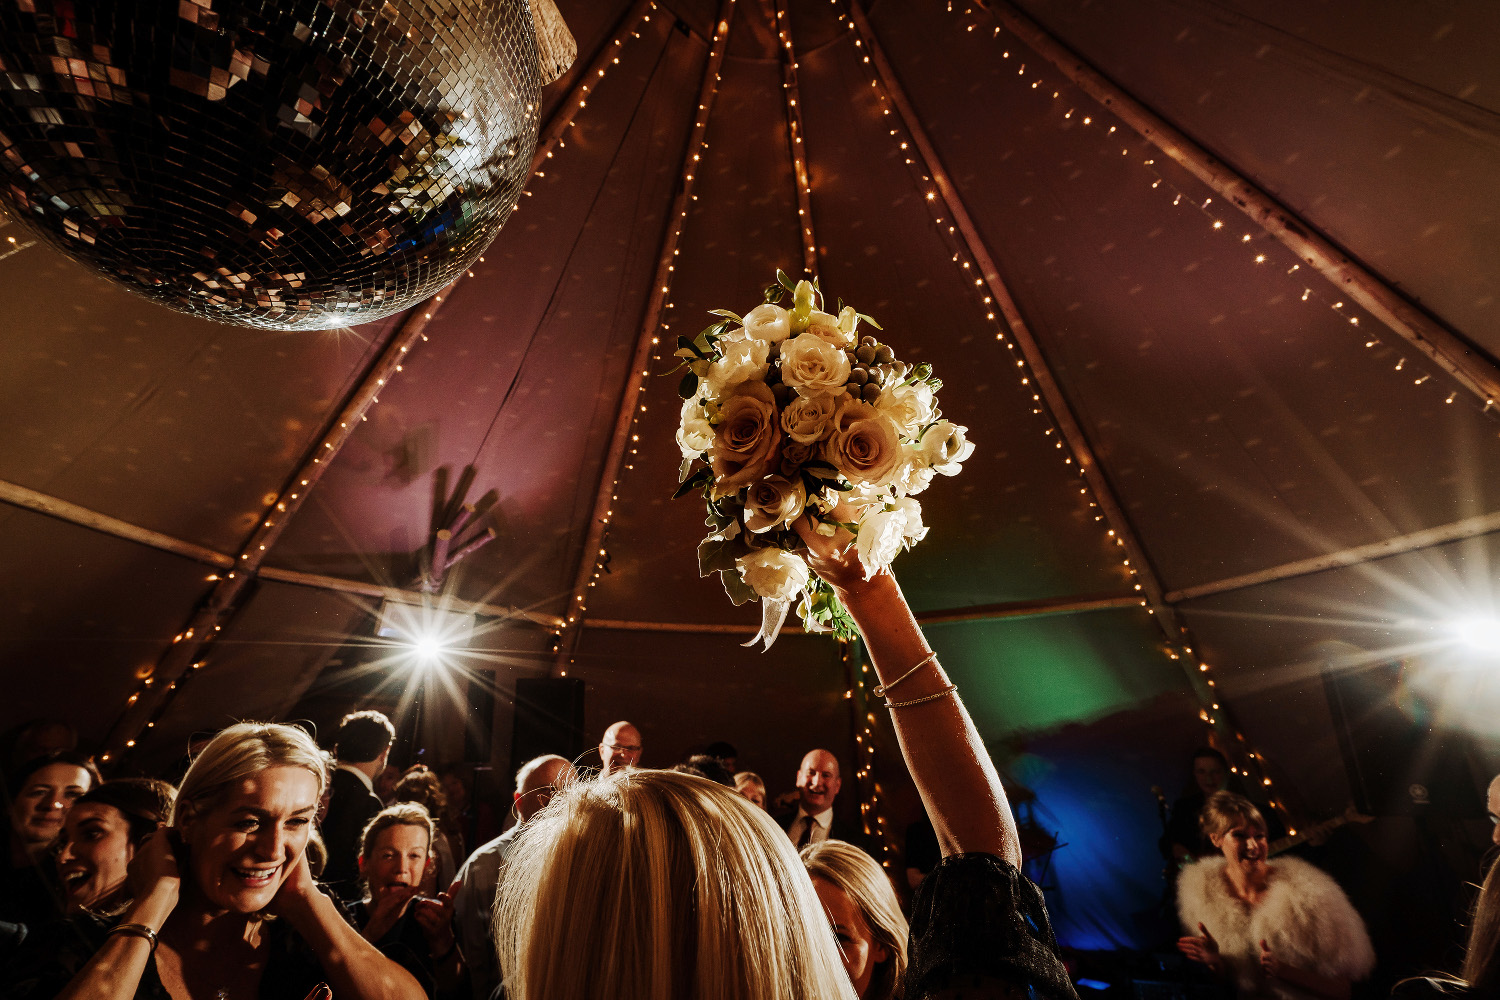 hand rises up to catch bridal bouquet